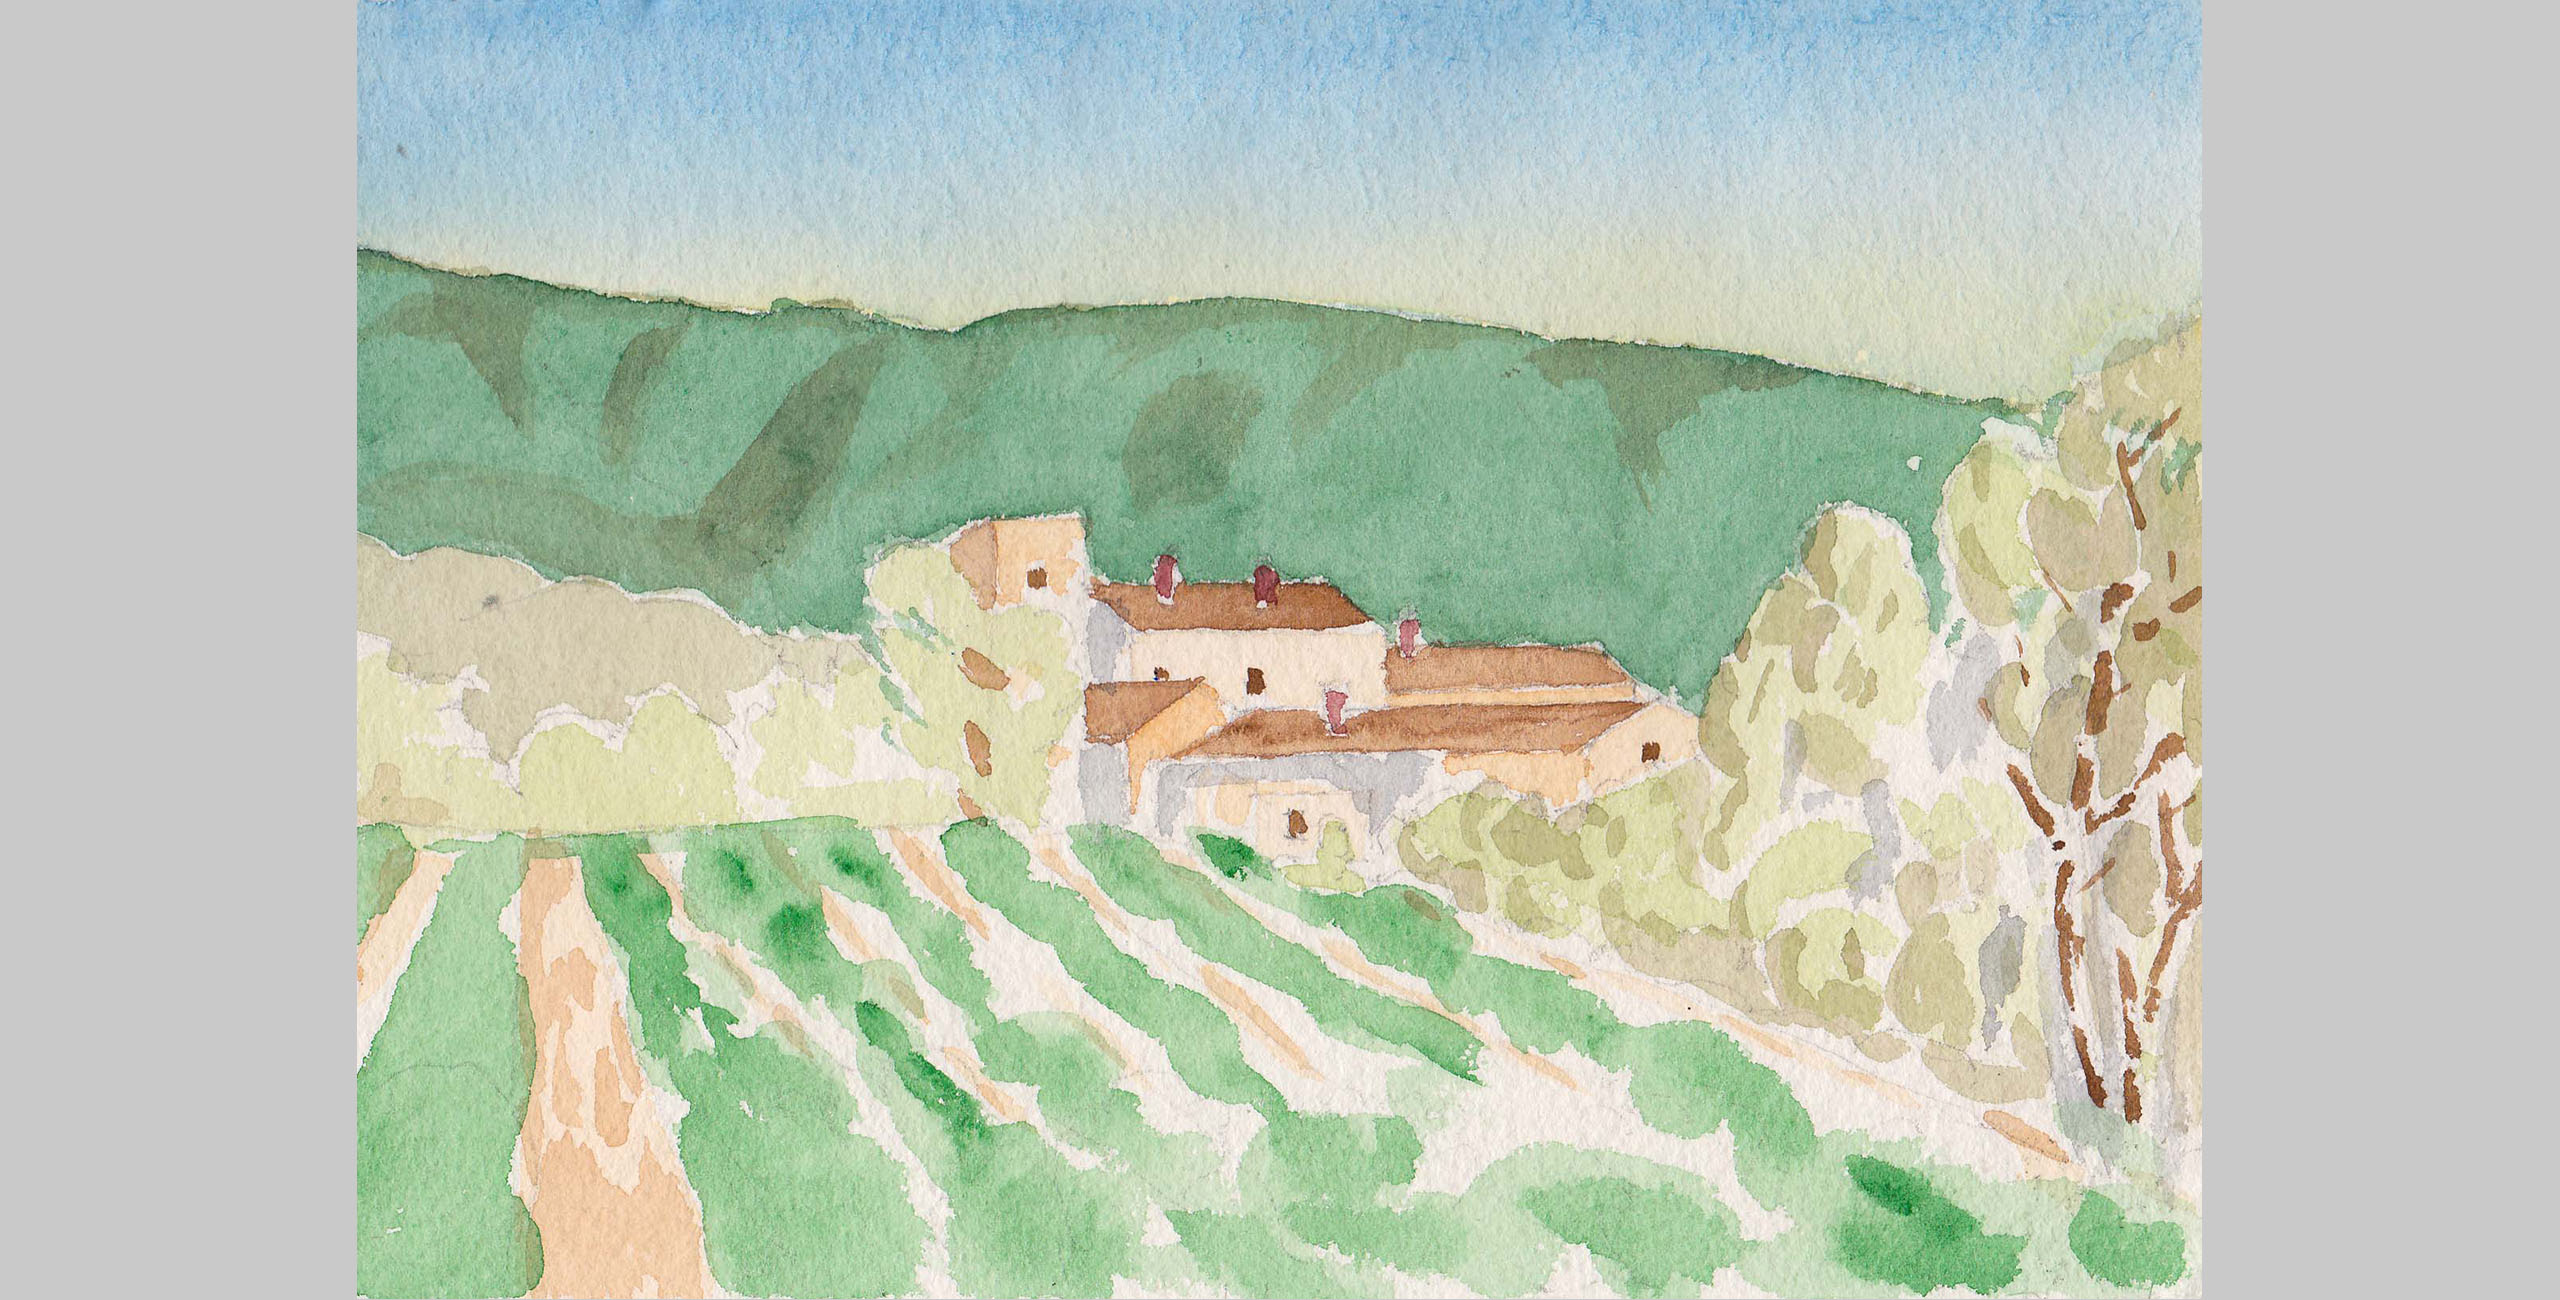 France 2, 2001, watercolor, 5 x 7 in.